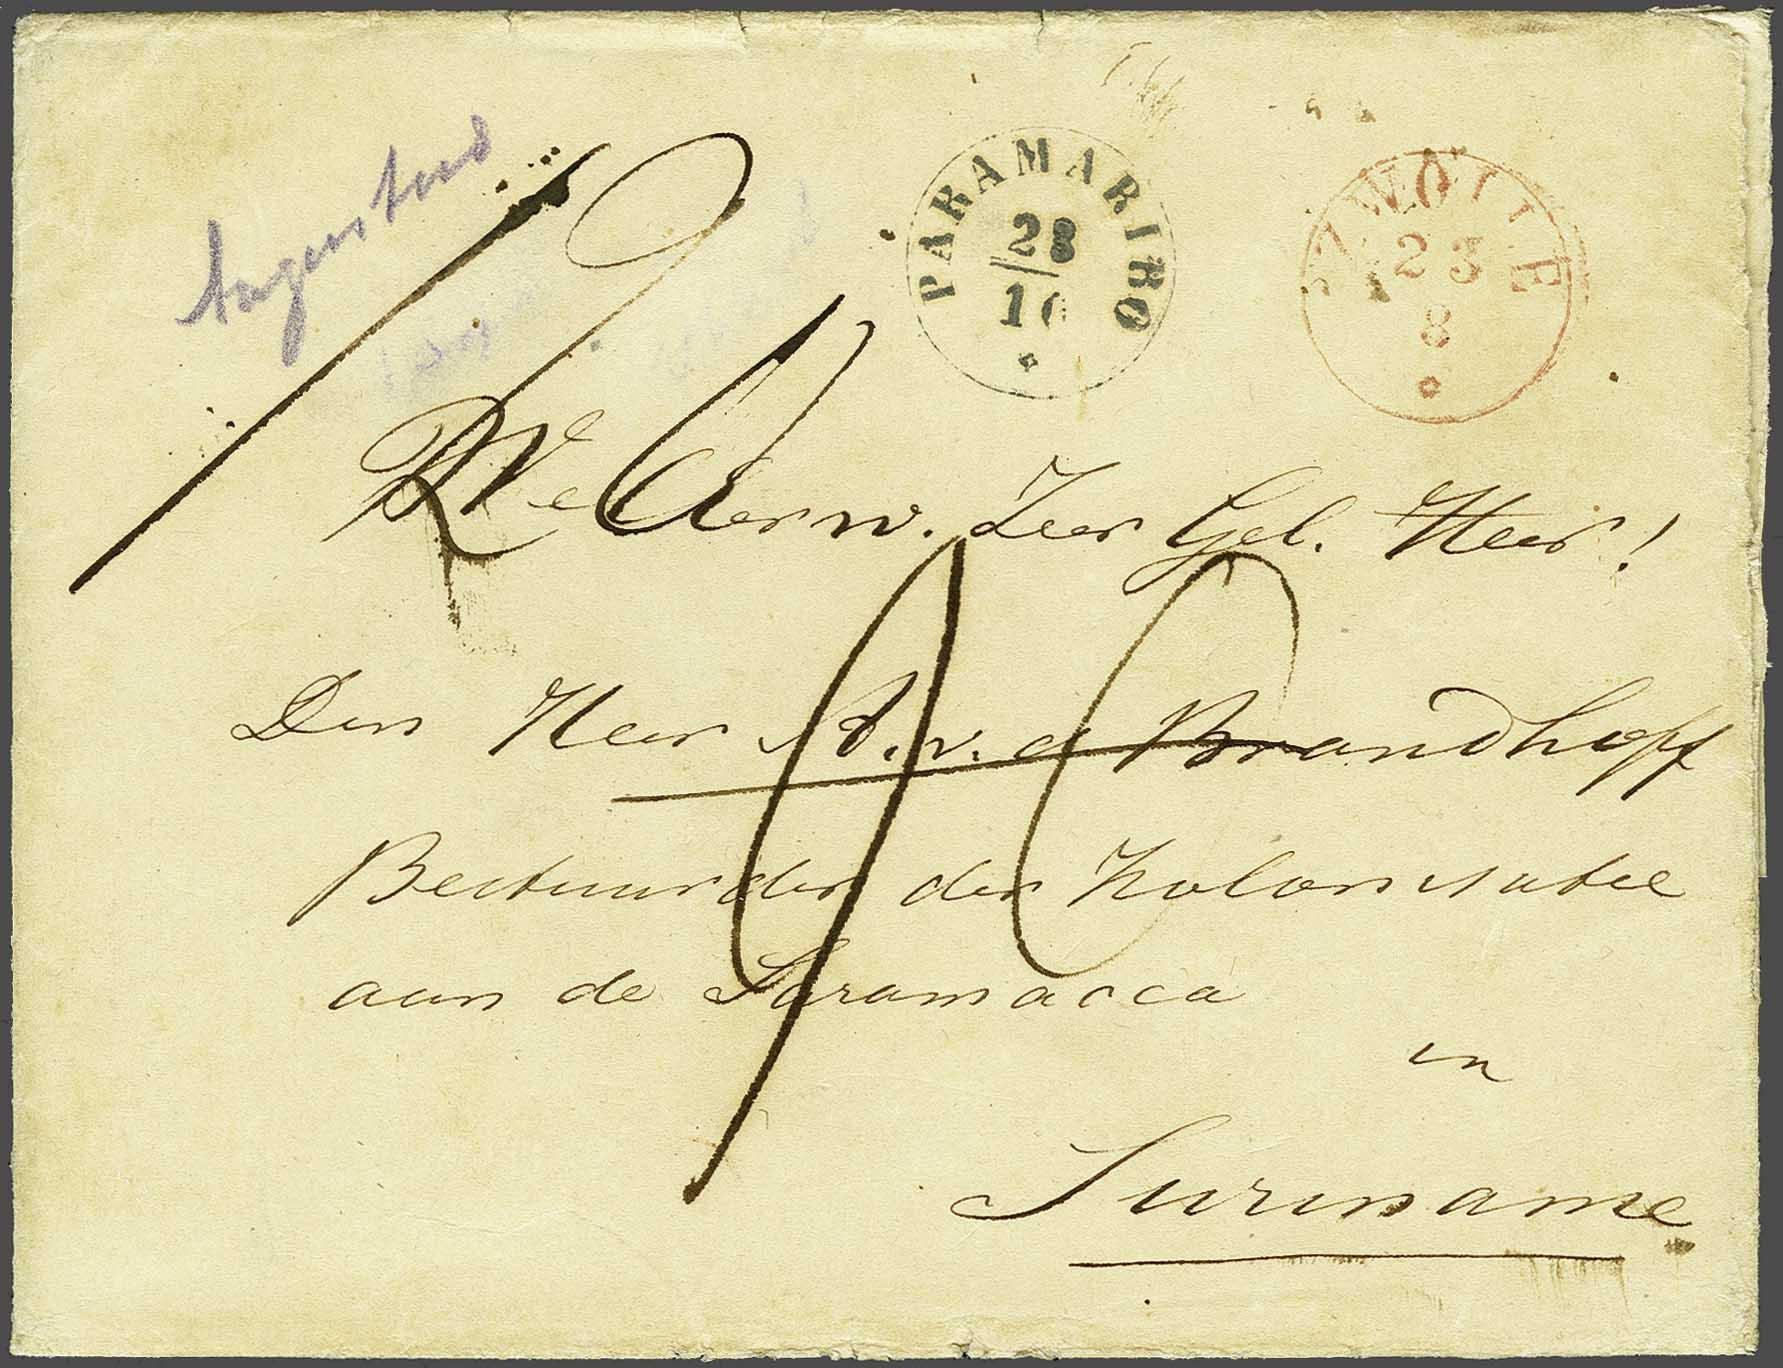 Lot 2168 - Netherlands and former colonies surinam -  Corinphila Veilingen Auction 245-246 Day 3 - Netherlands and former colonies - Single lots, Collections and lots, Boxes and literature